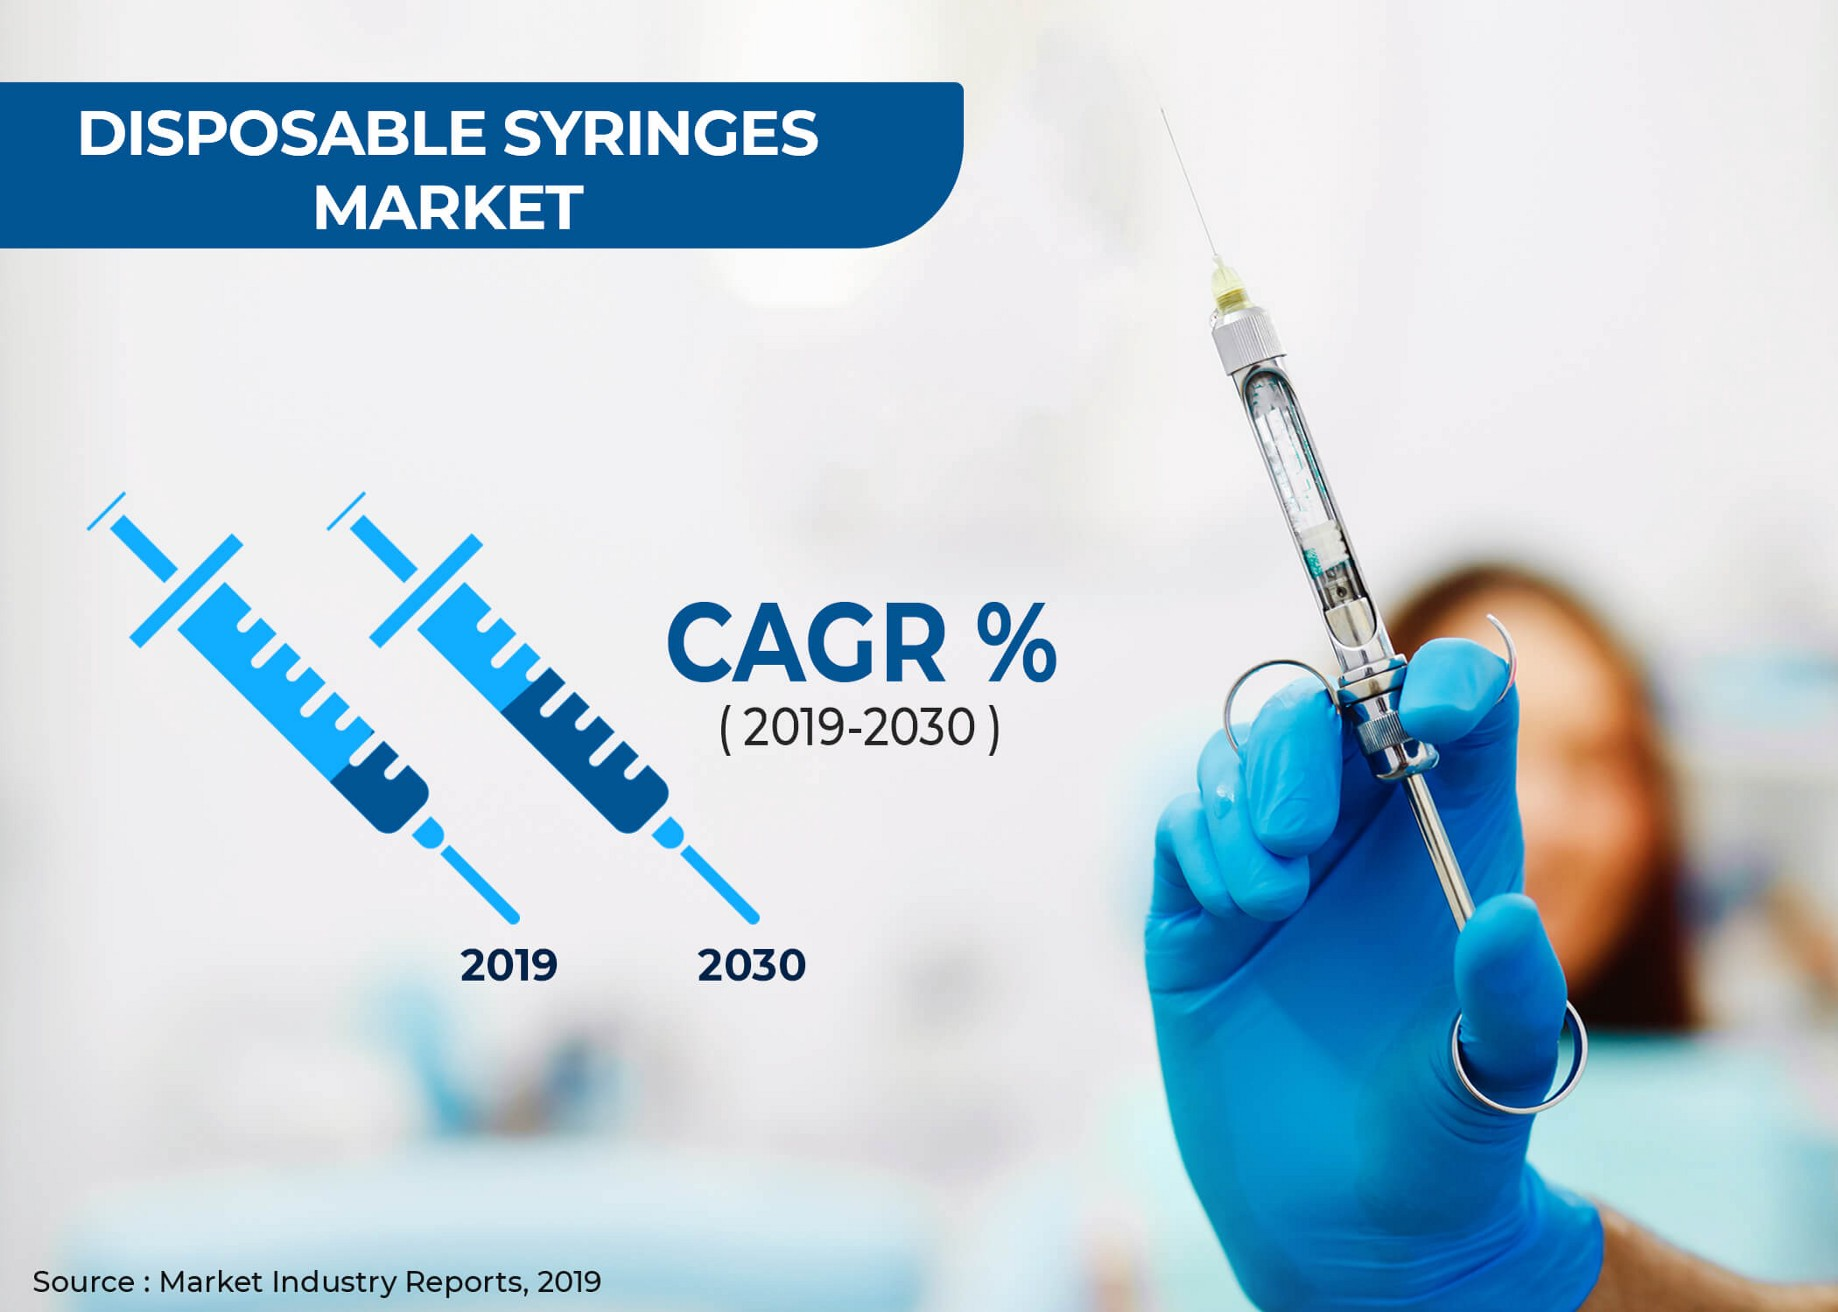 Disposable Syringes Market Report Talk about Growth